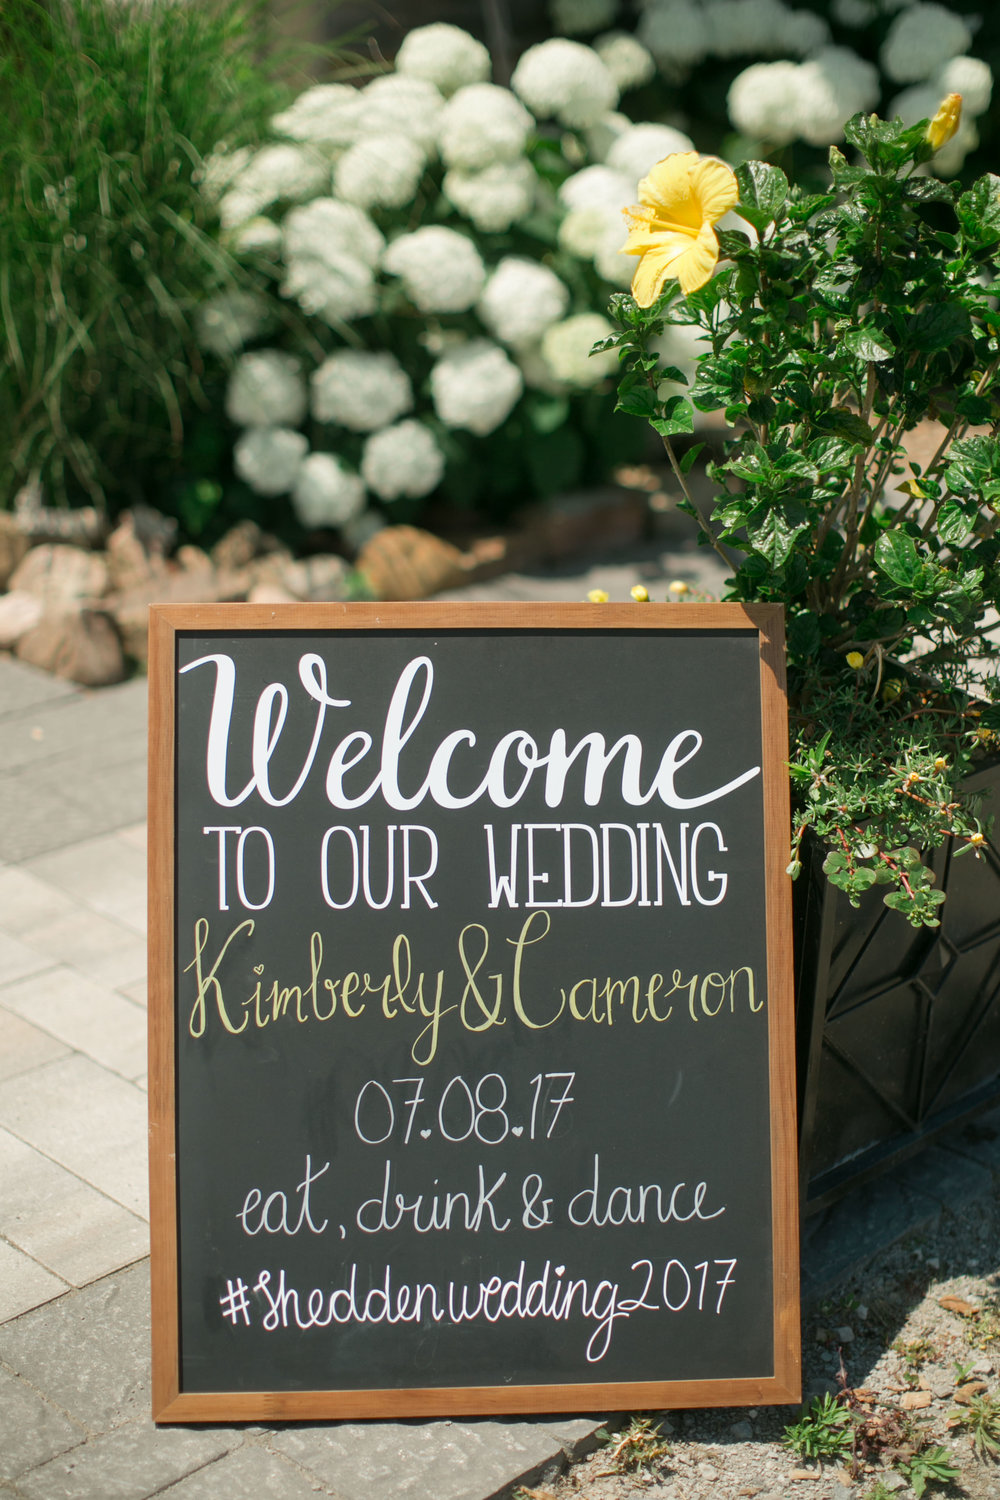 Kimberley + Cameron - Daniel Ricci Weddings - High Res. Finals-85.jpg